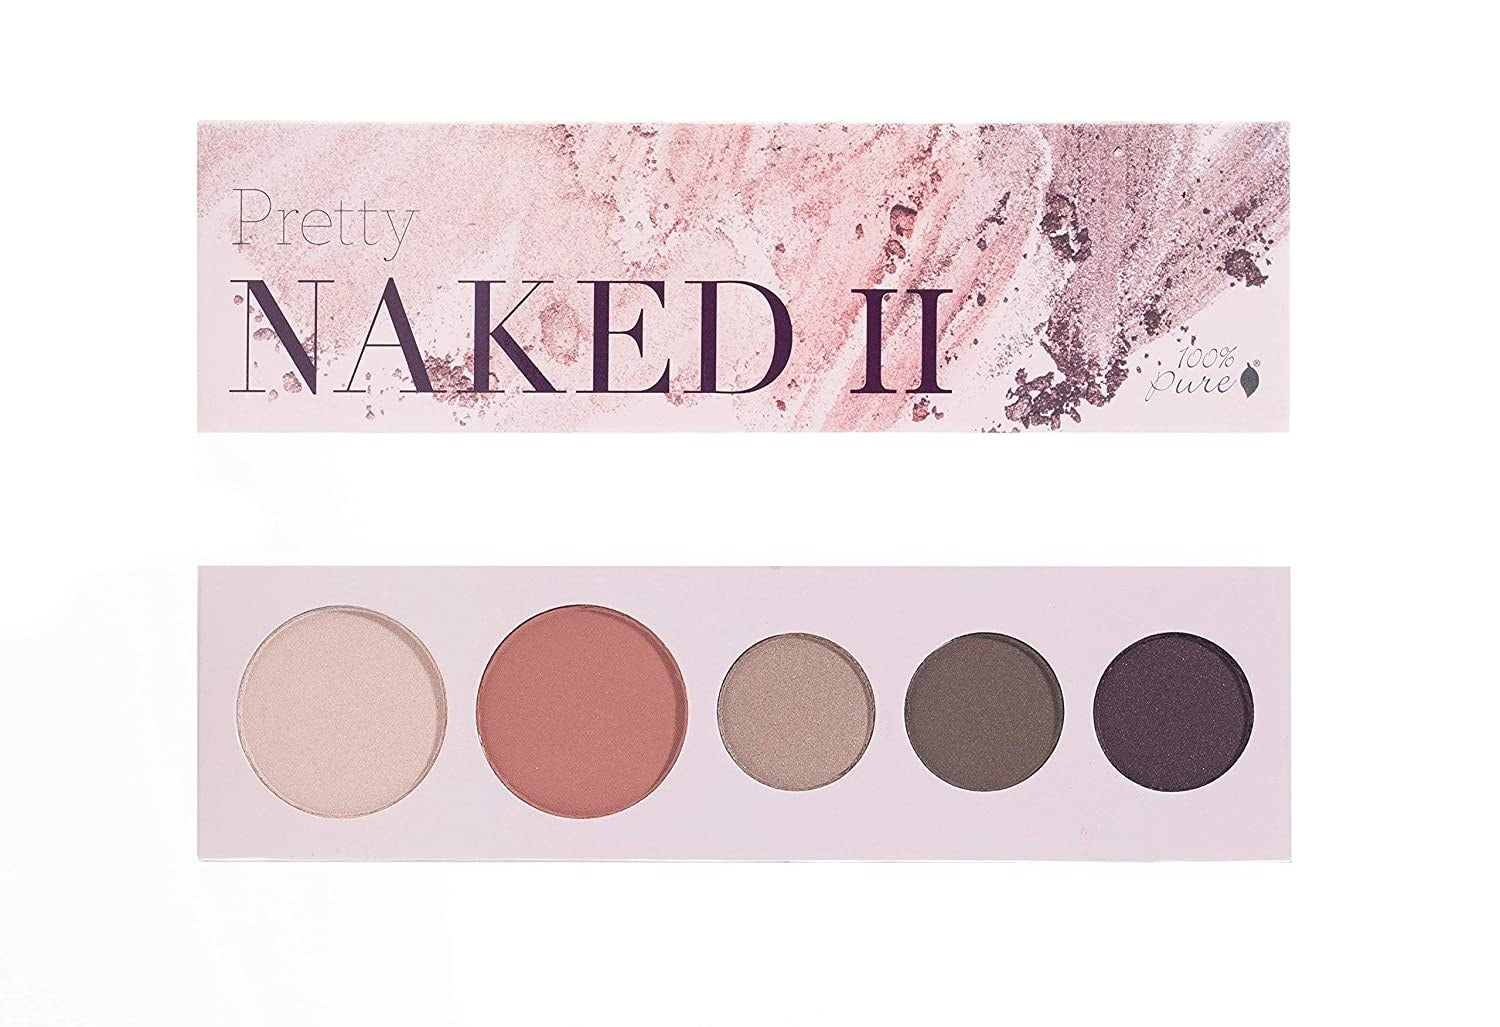 the pretty naked II palette with five different shades